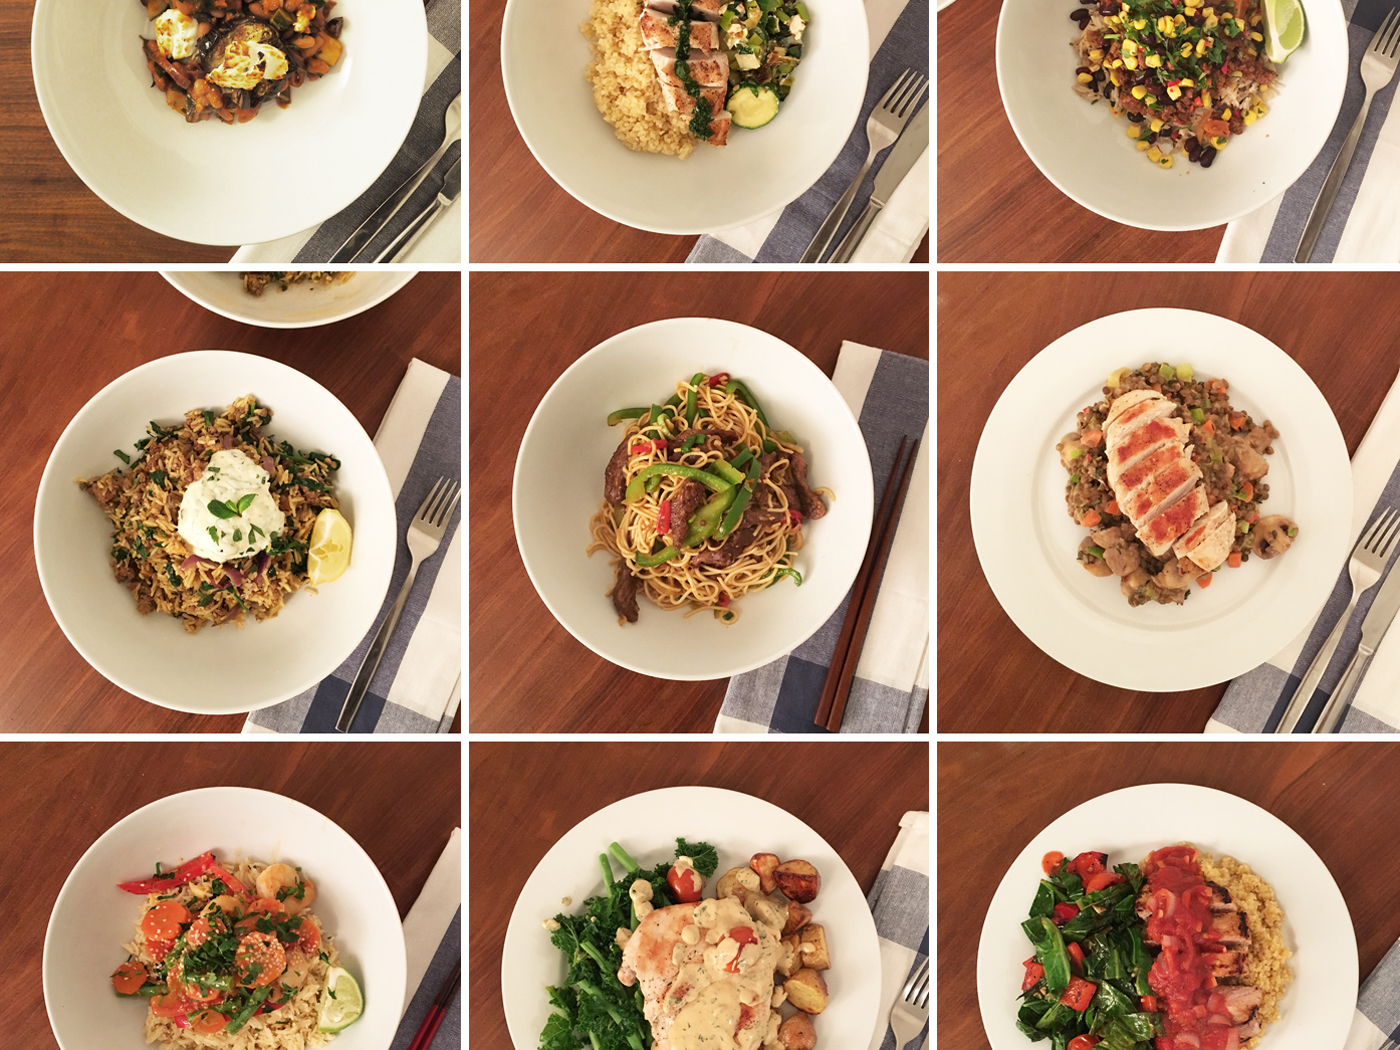 Meal Kit Delivery Service Hellofresh  Serial Number